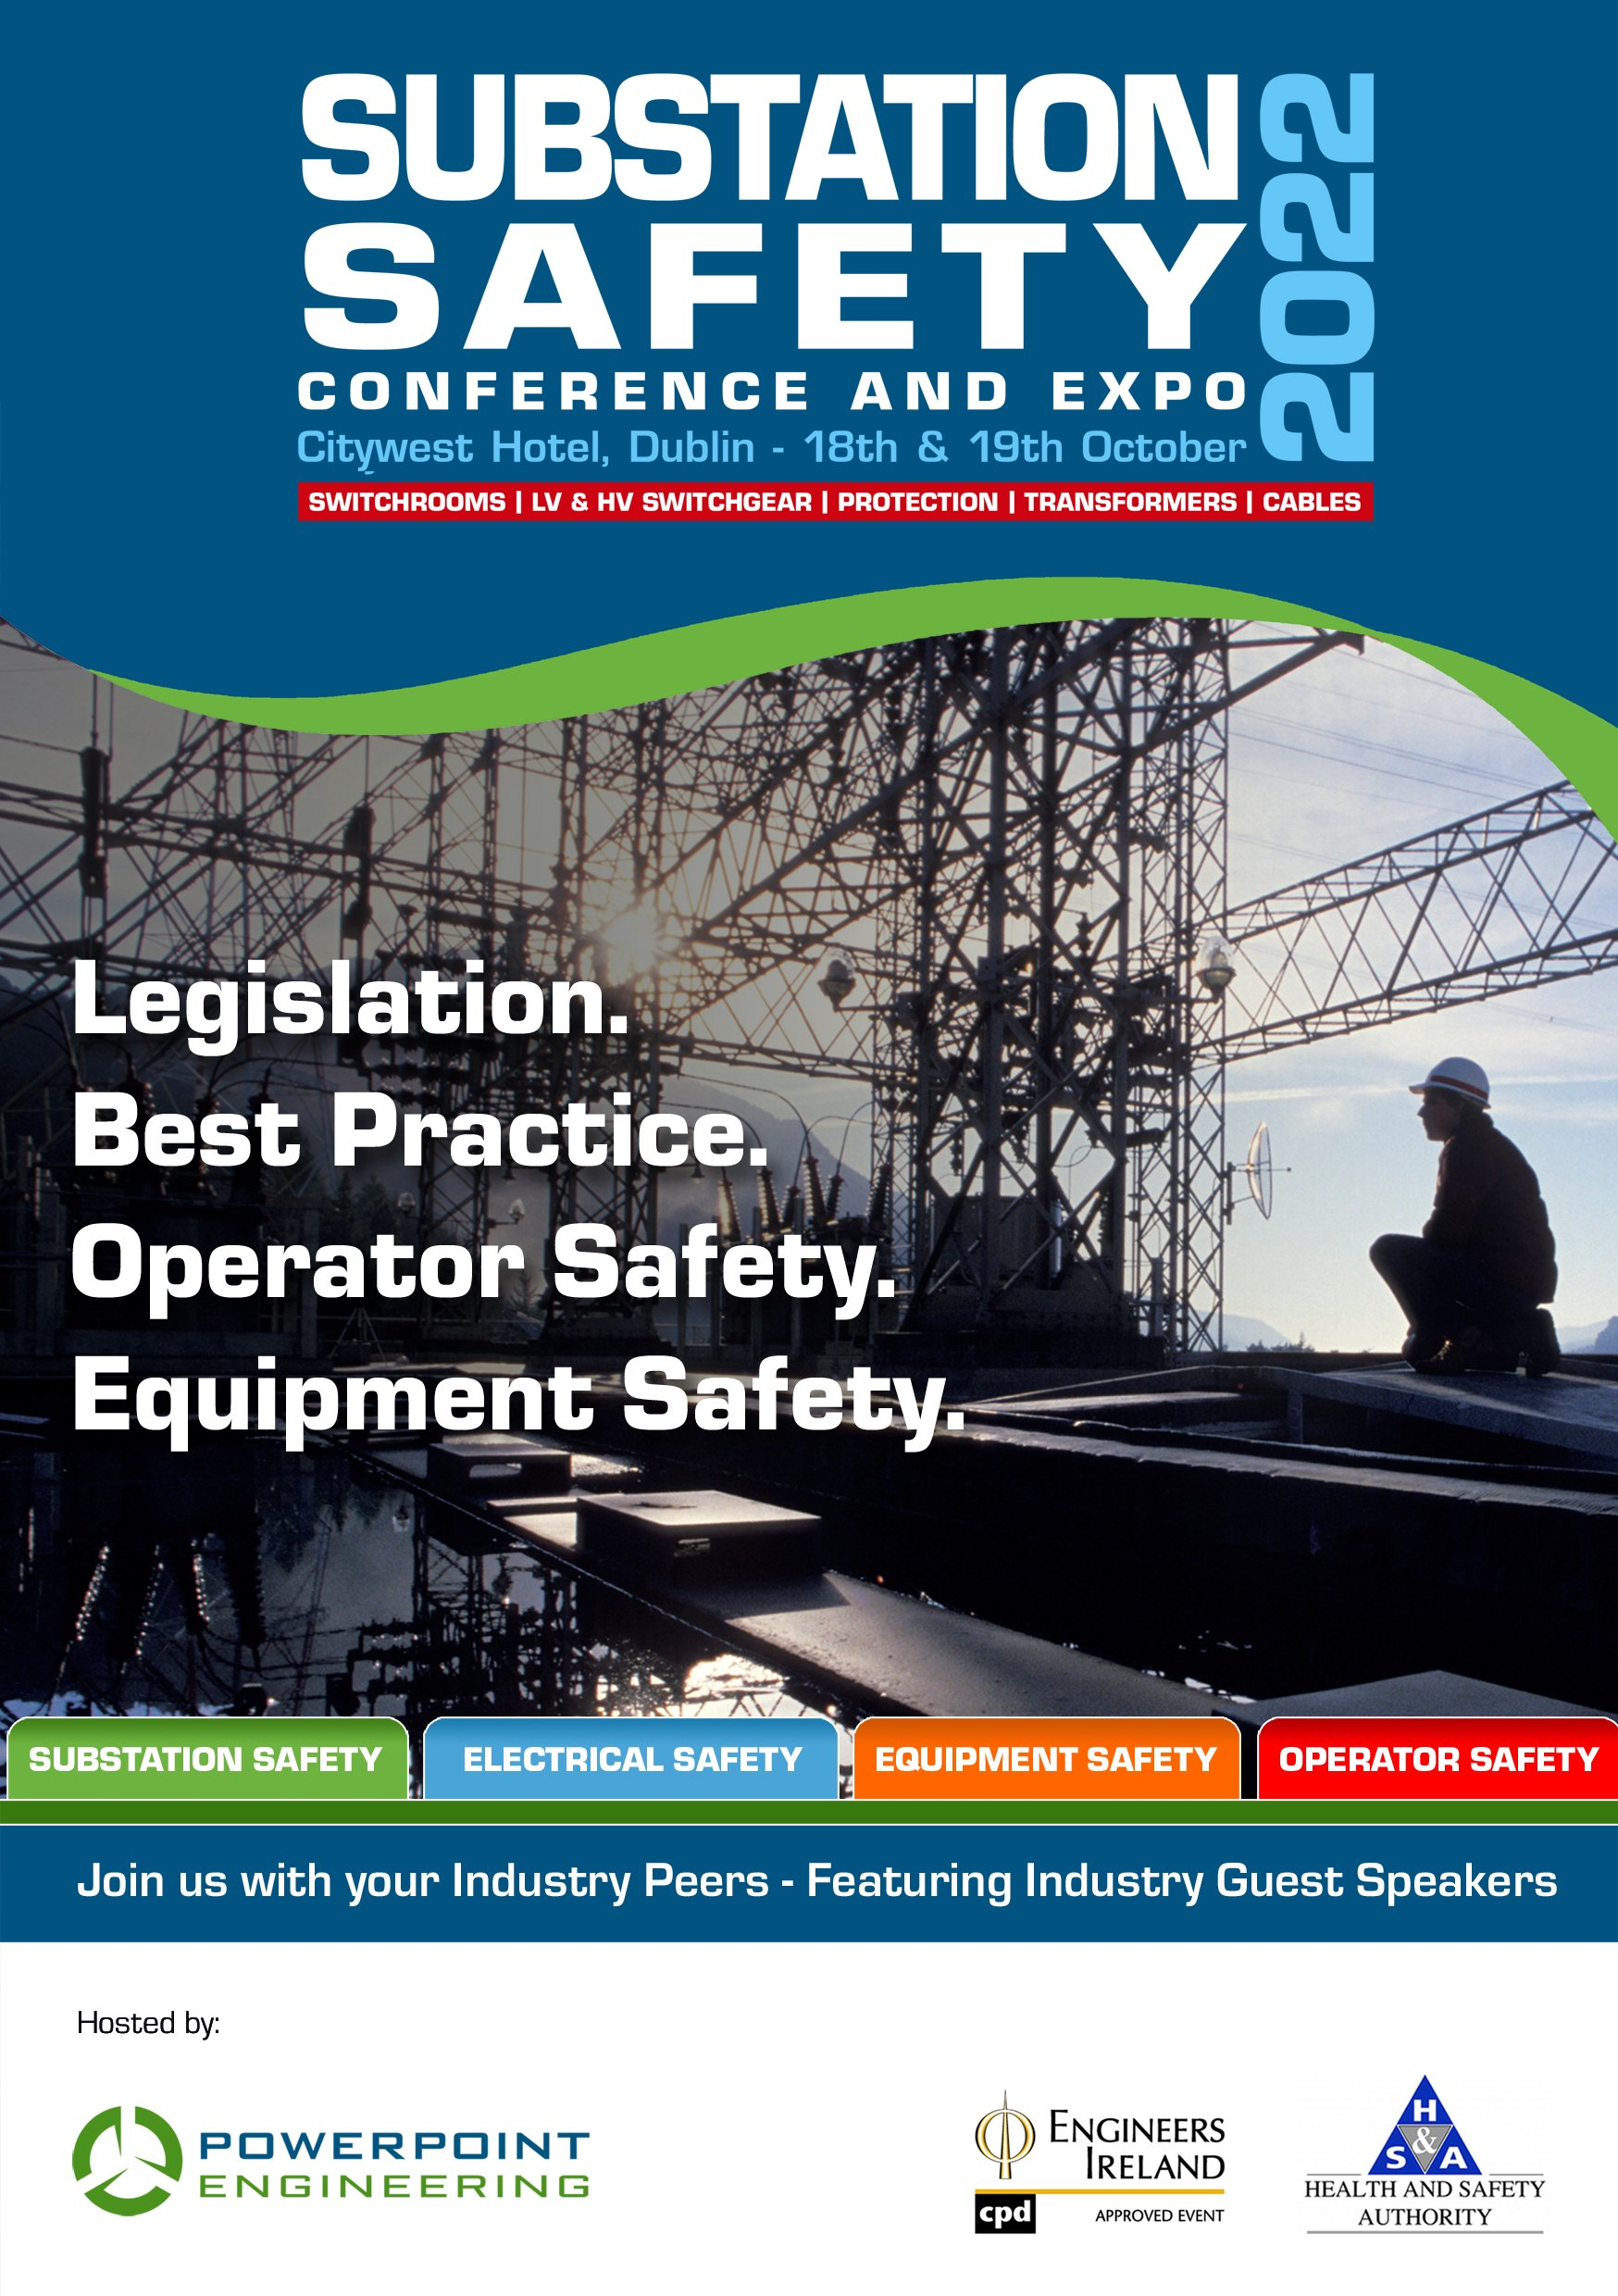 Substation Safety Conference and Expo 2022